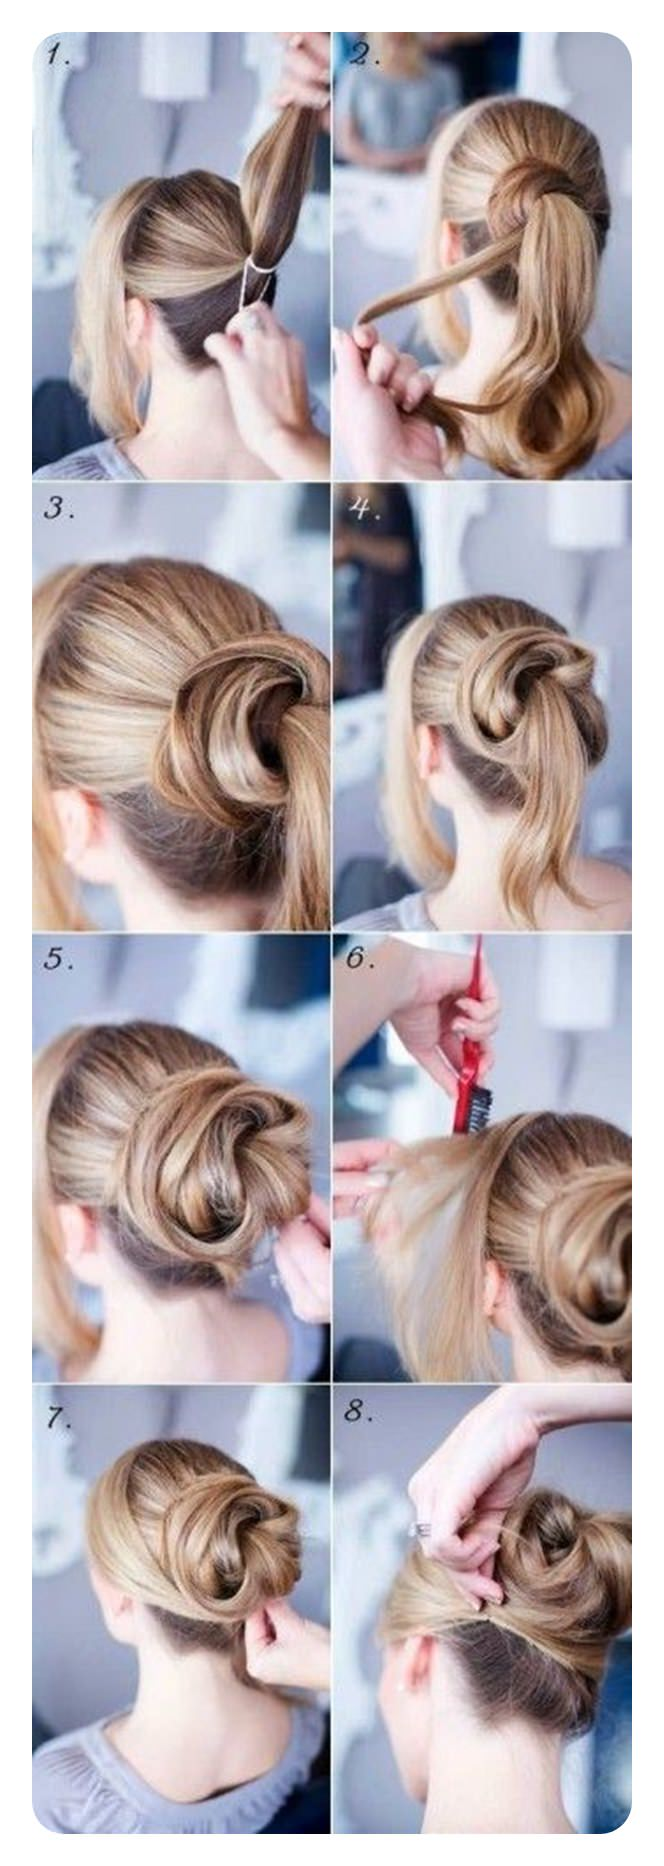 87 Easy Low Bun Hairstyles And Their Step By Step Tutorials